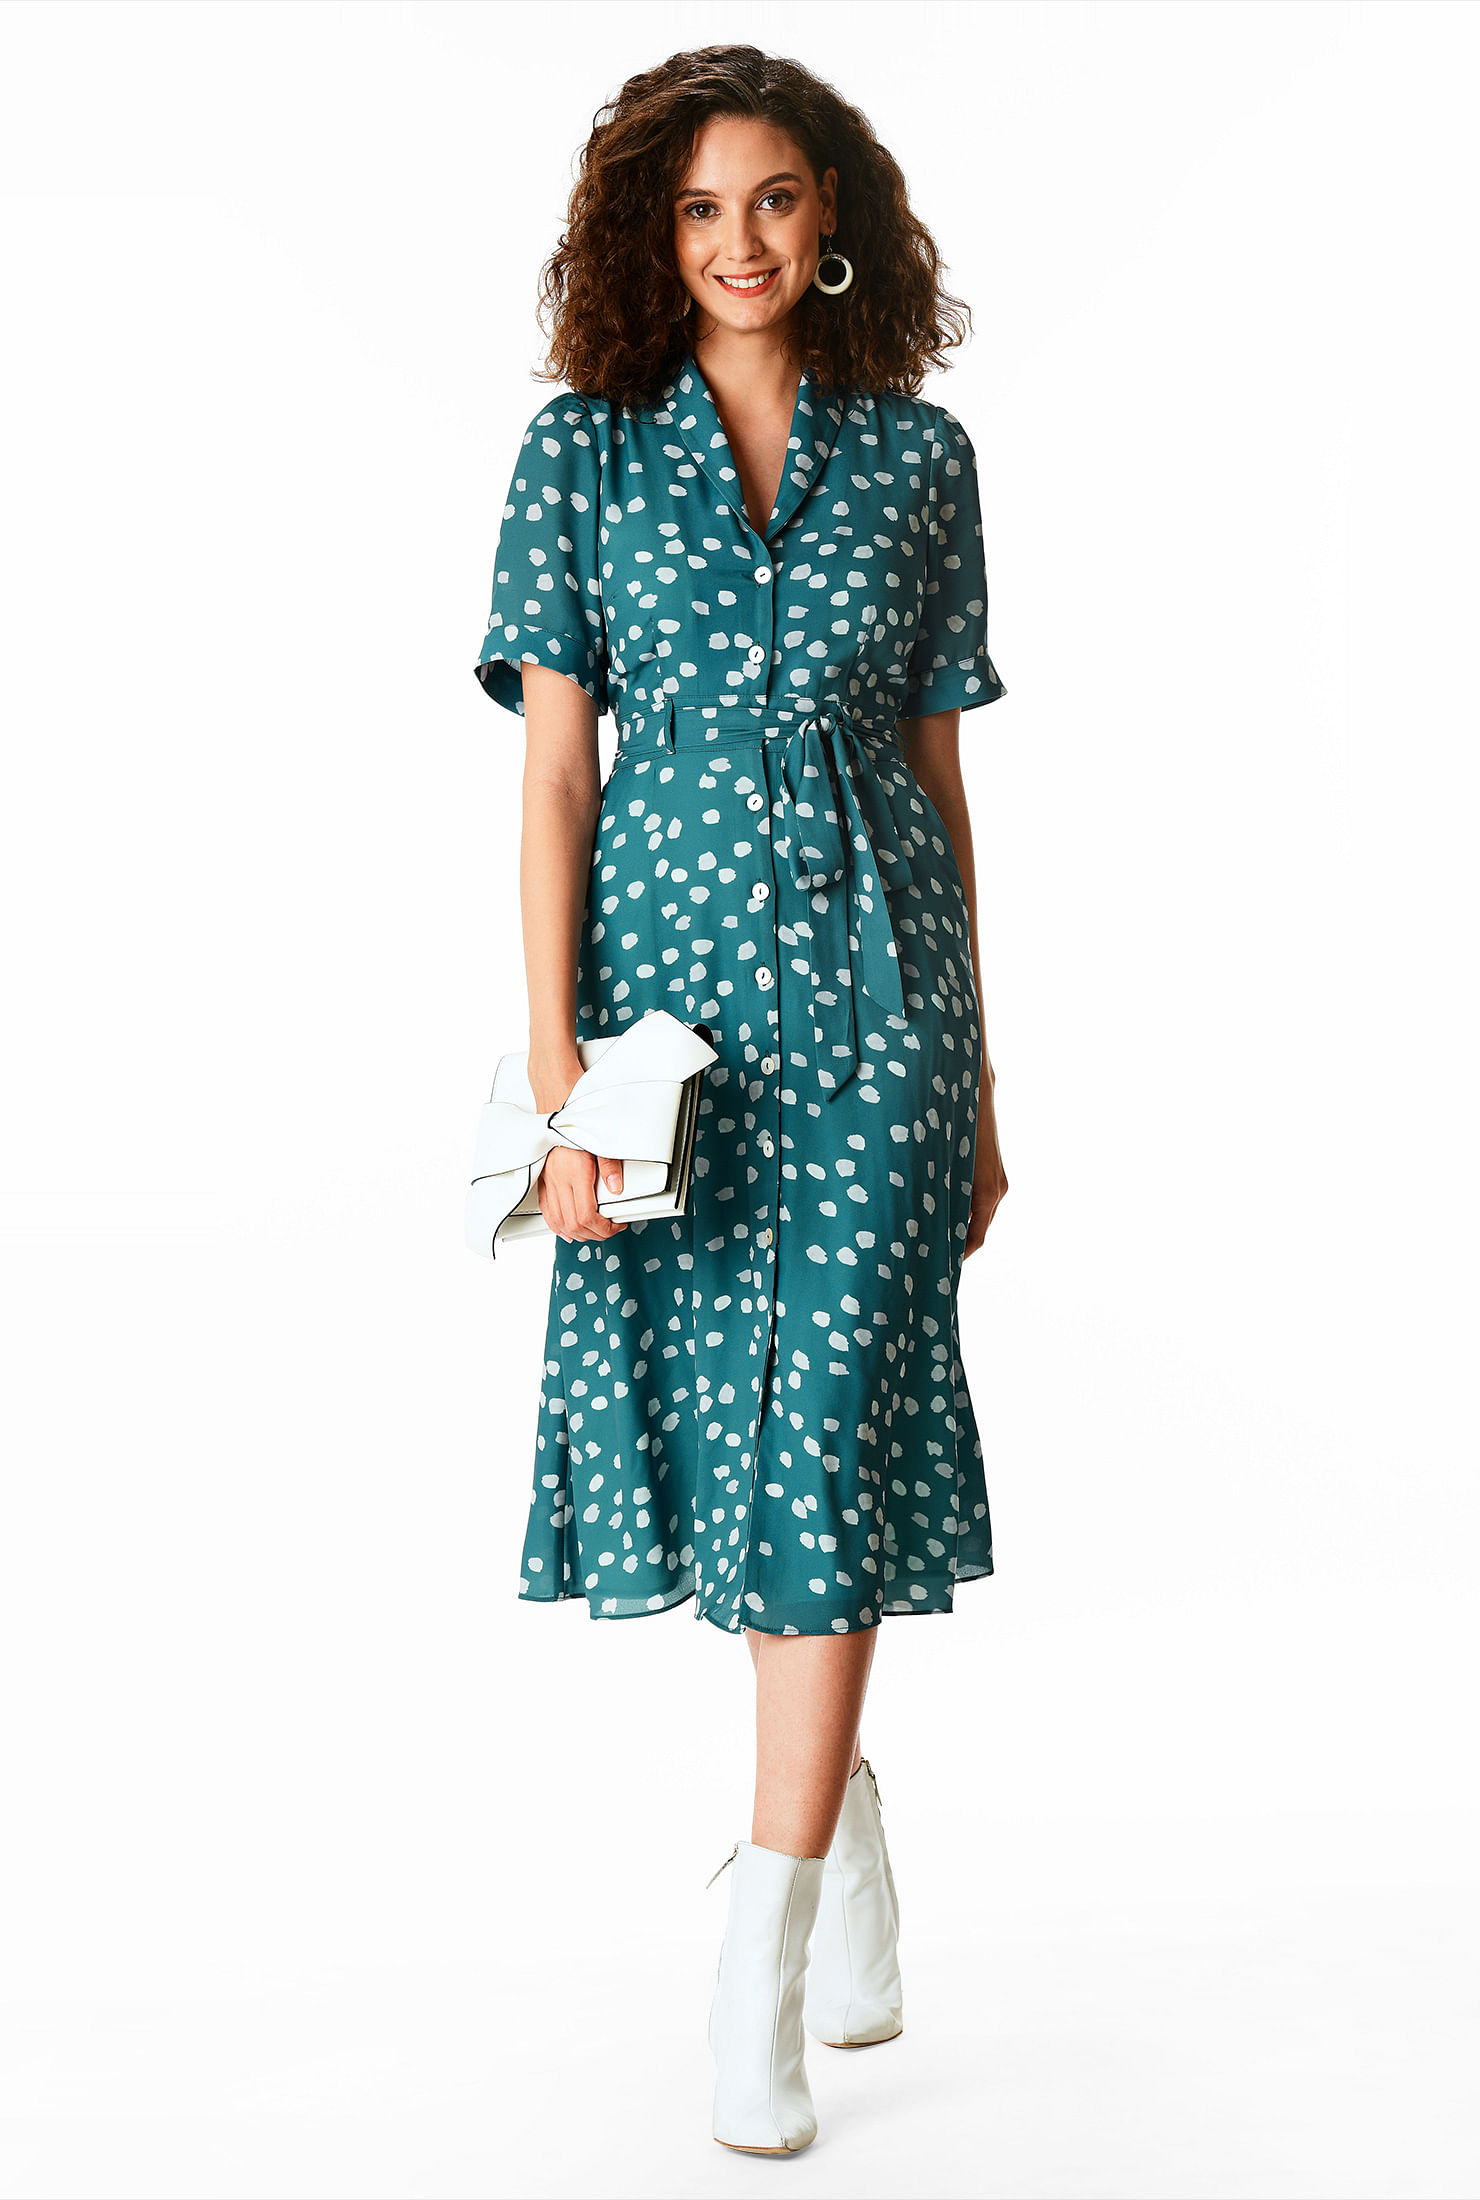 1930s Day Dresses, Afternoon Dresses History Graphic dot print crepe tie waist shirtdress $79.95 AT vintagedancer.com